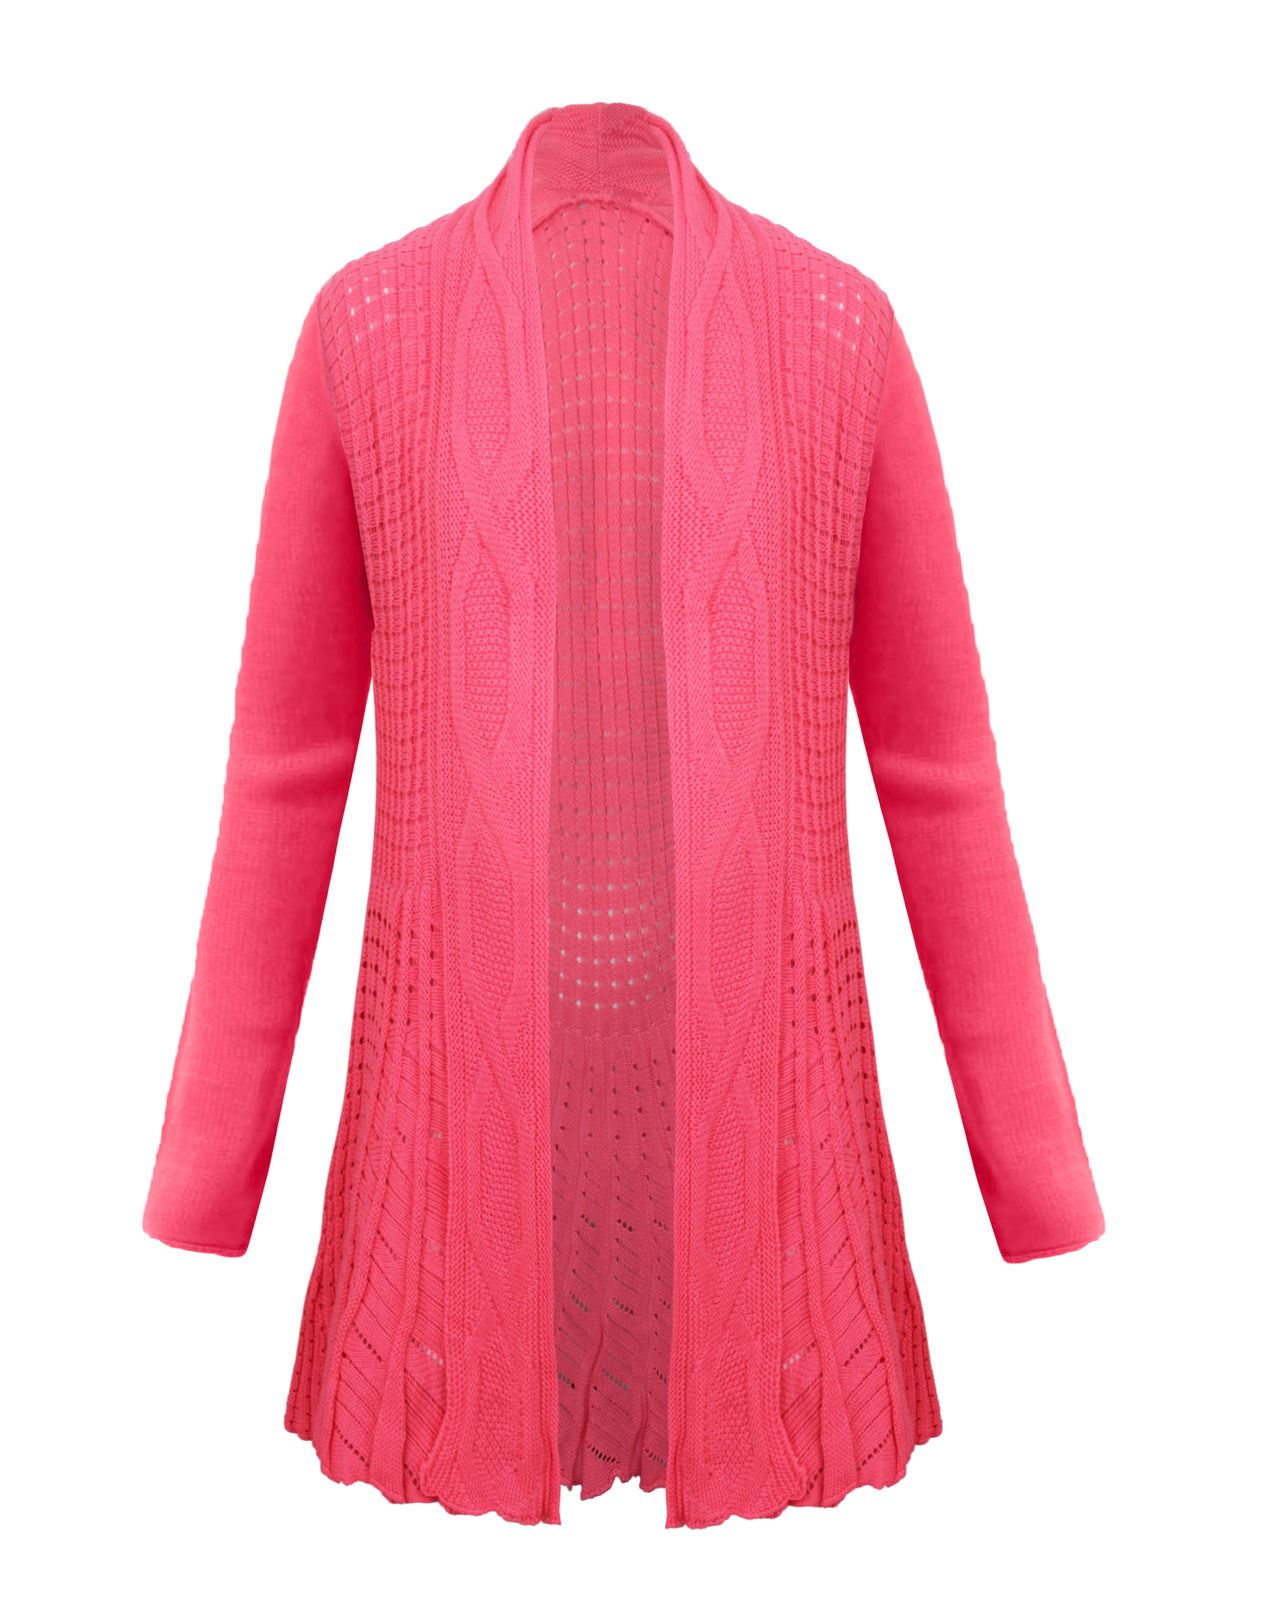 GRACE KARIN Essential Solid Open Front Long Knited Cardigan Sweater for Women.